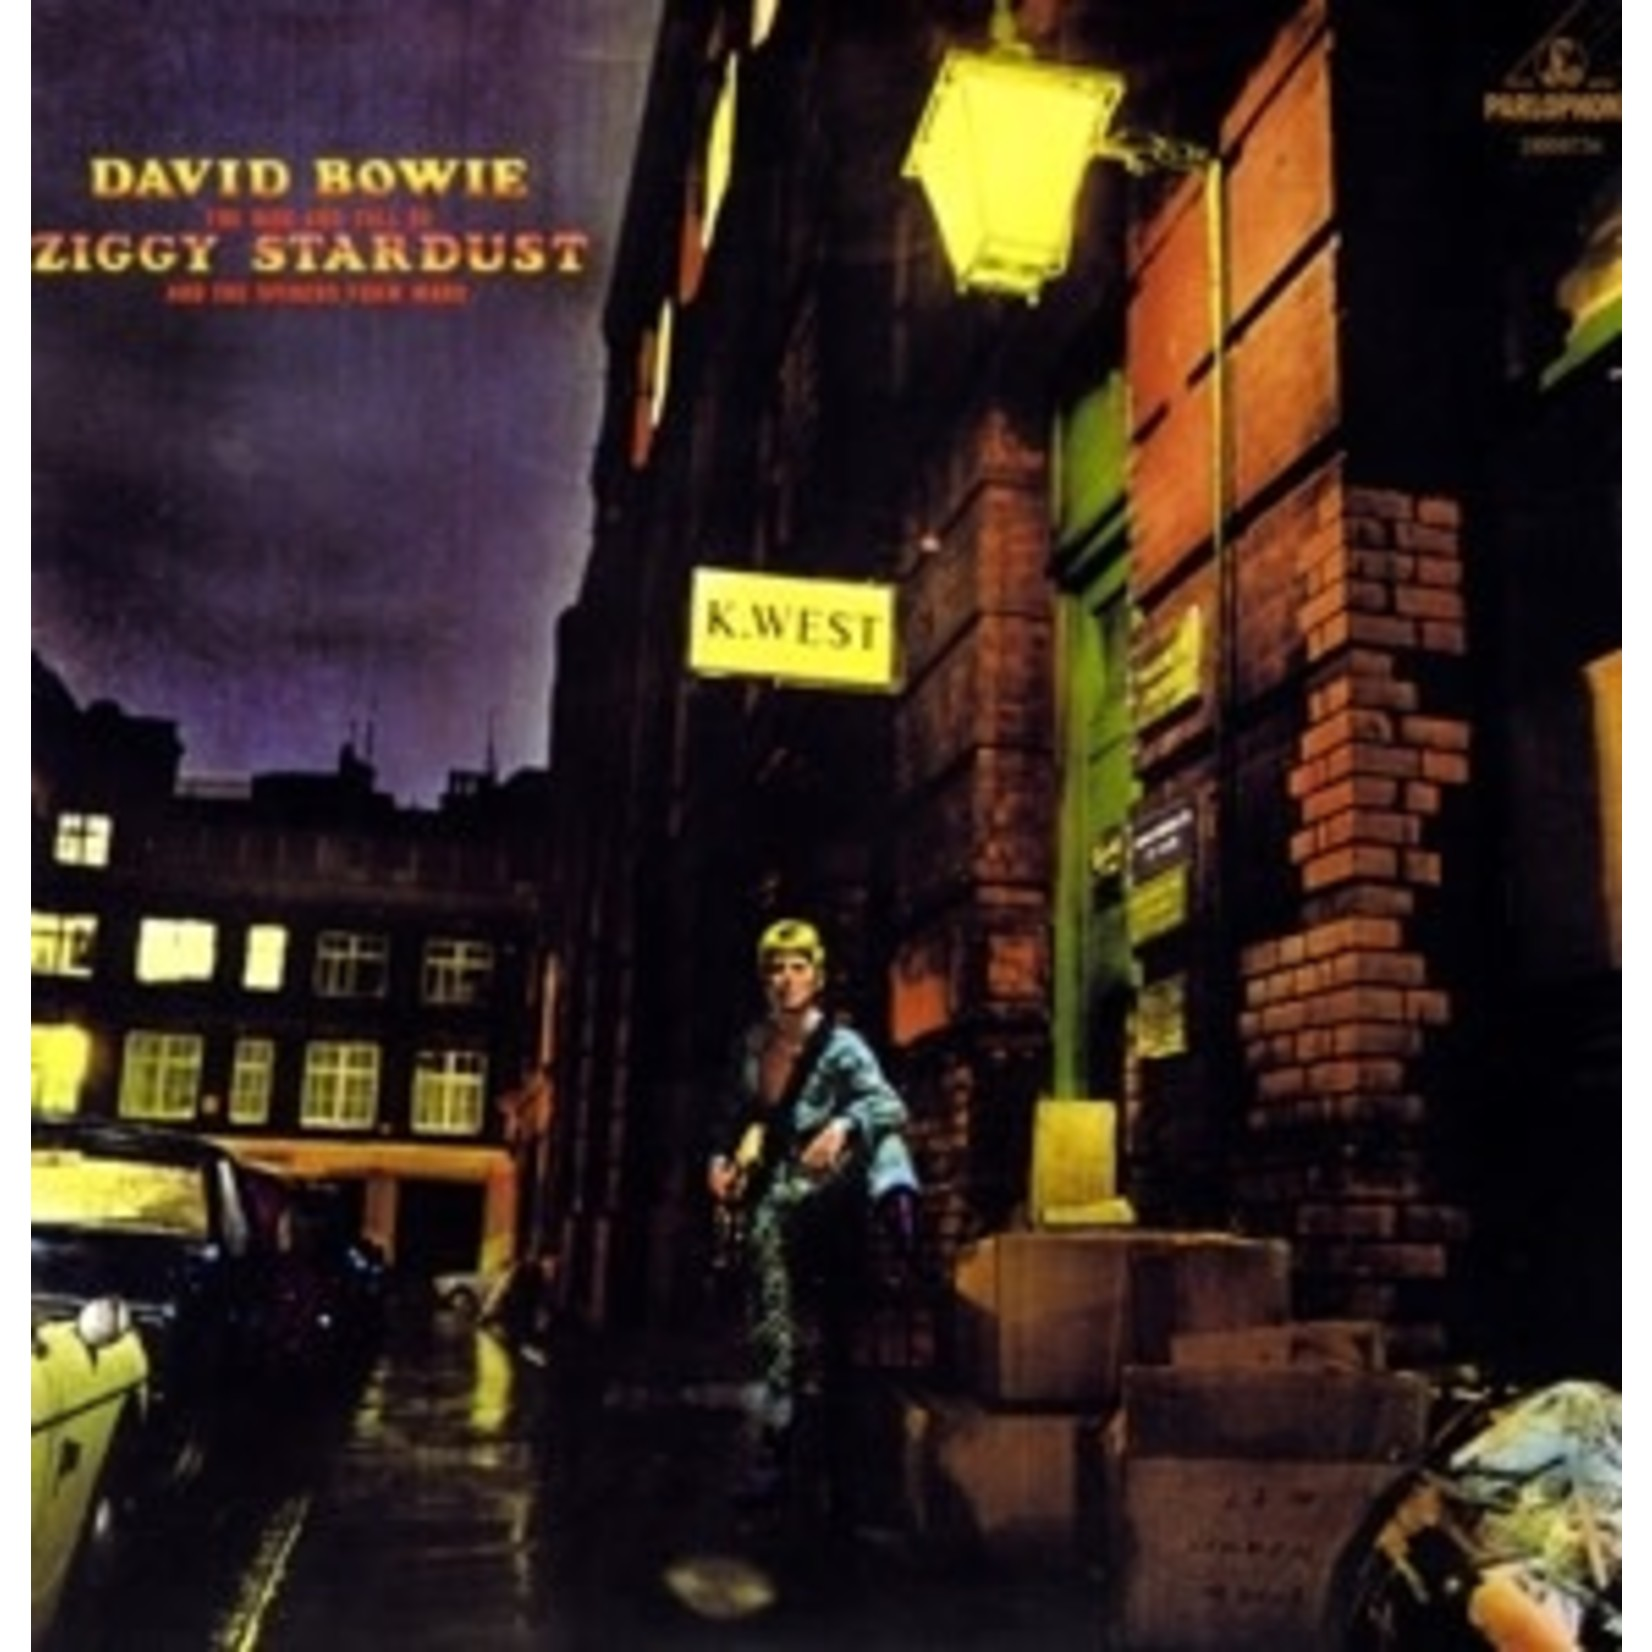 DAVID BOWIE - RISE AND FALL OF ZIGGY STARDUST & SPIDERS FROM MARS (VINYL)